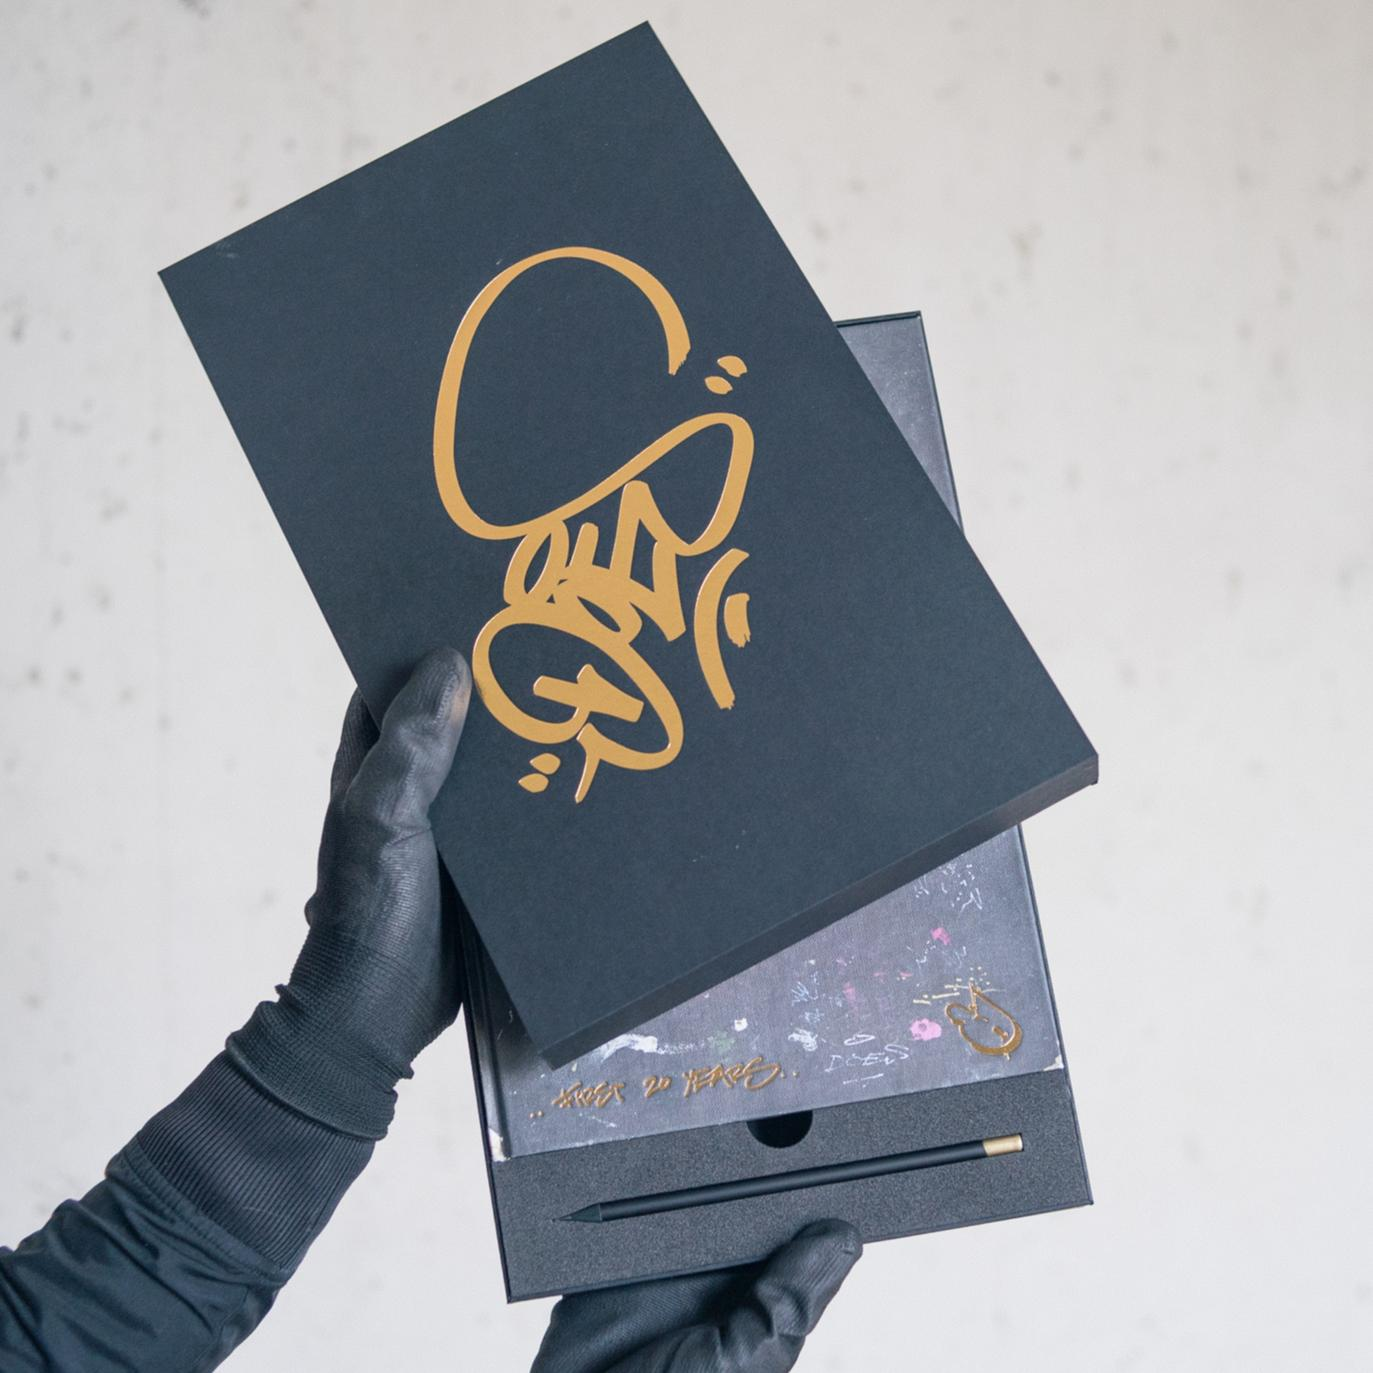 A work by Does - DOES Blackbook 'First 20 Years' – Deluxe Edition_thumb